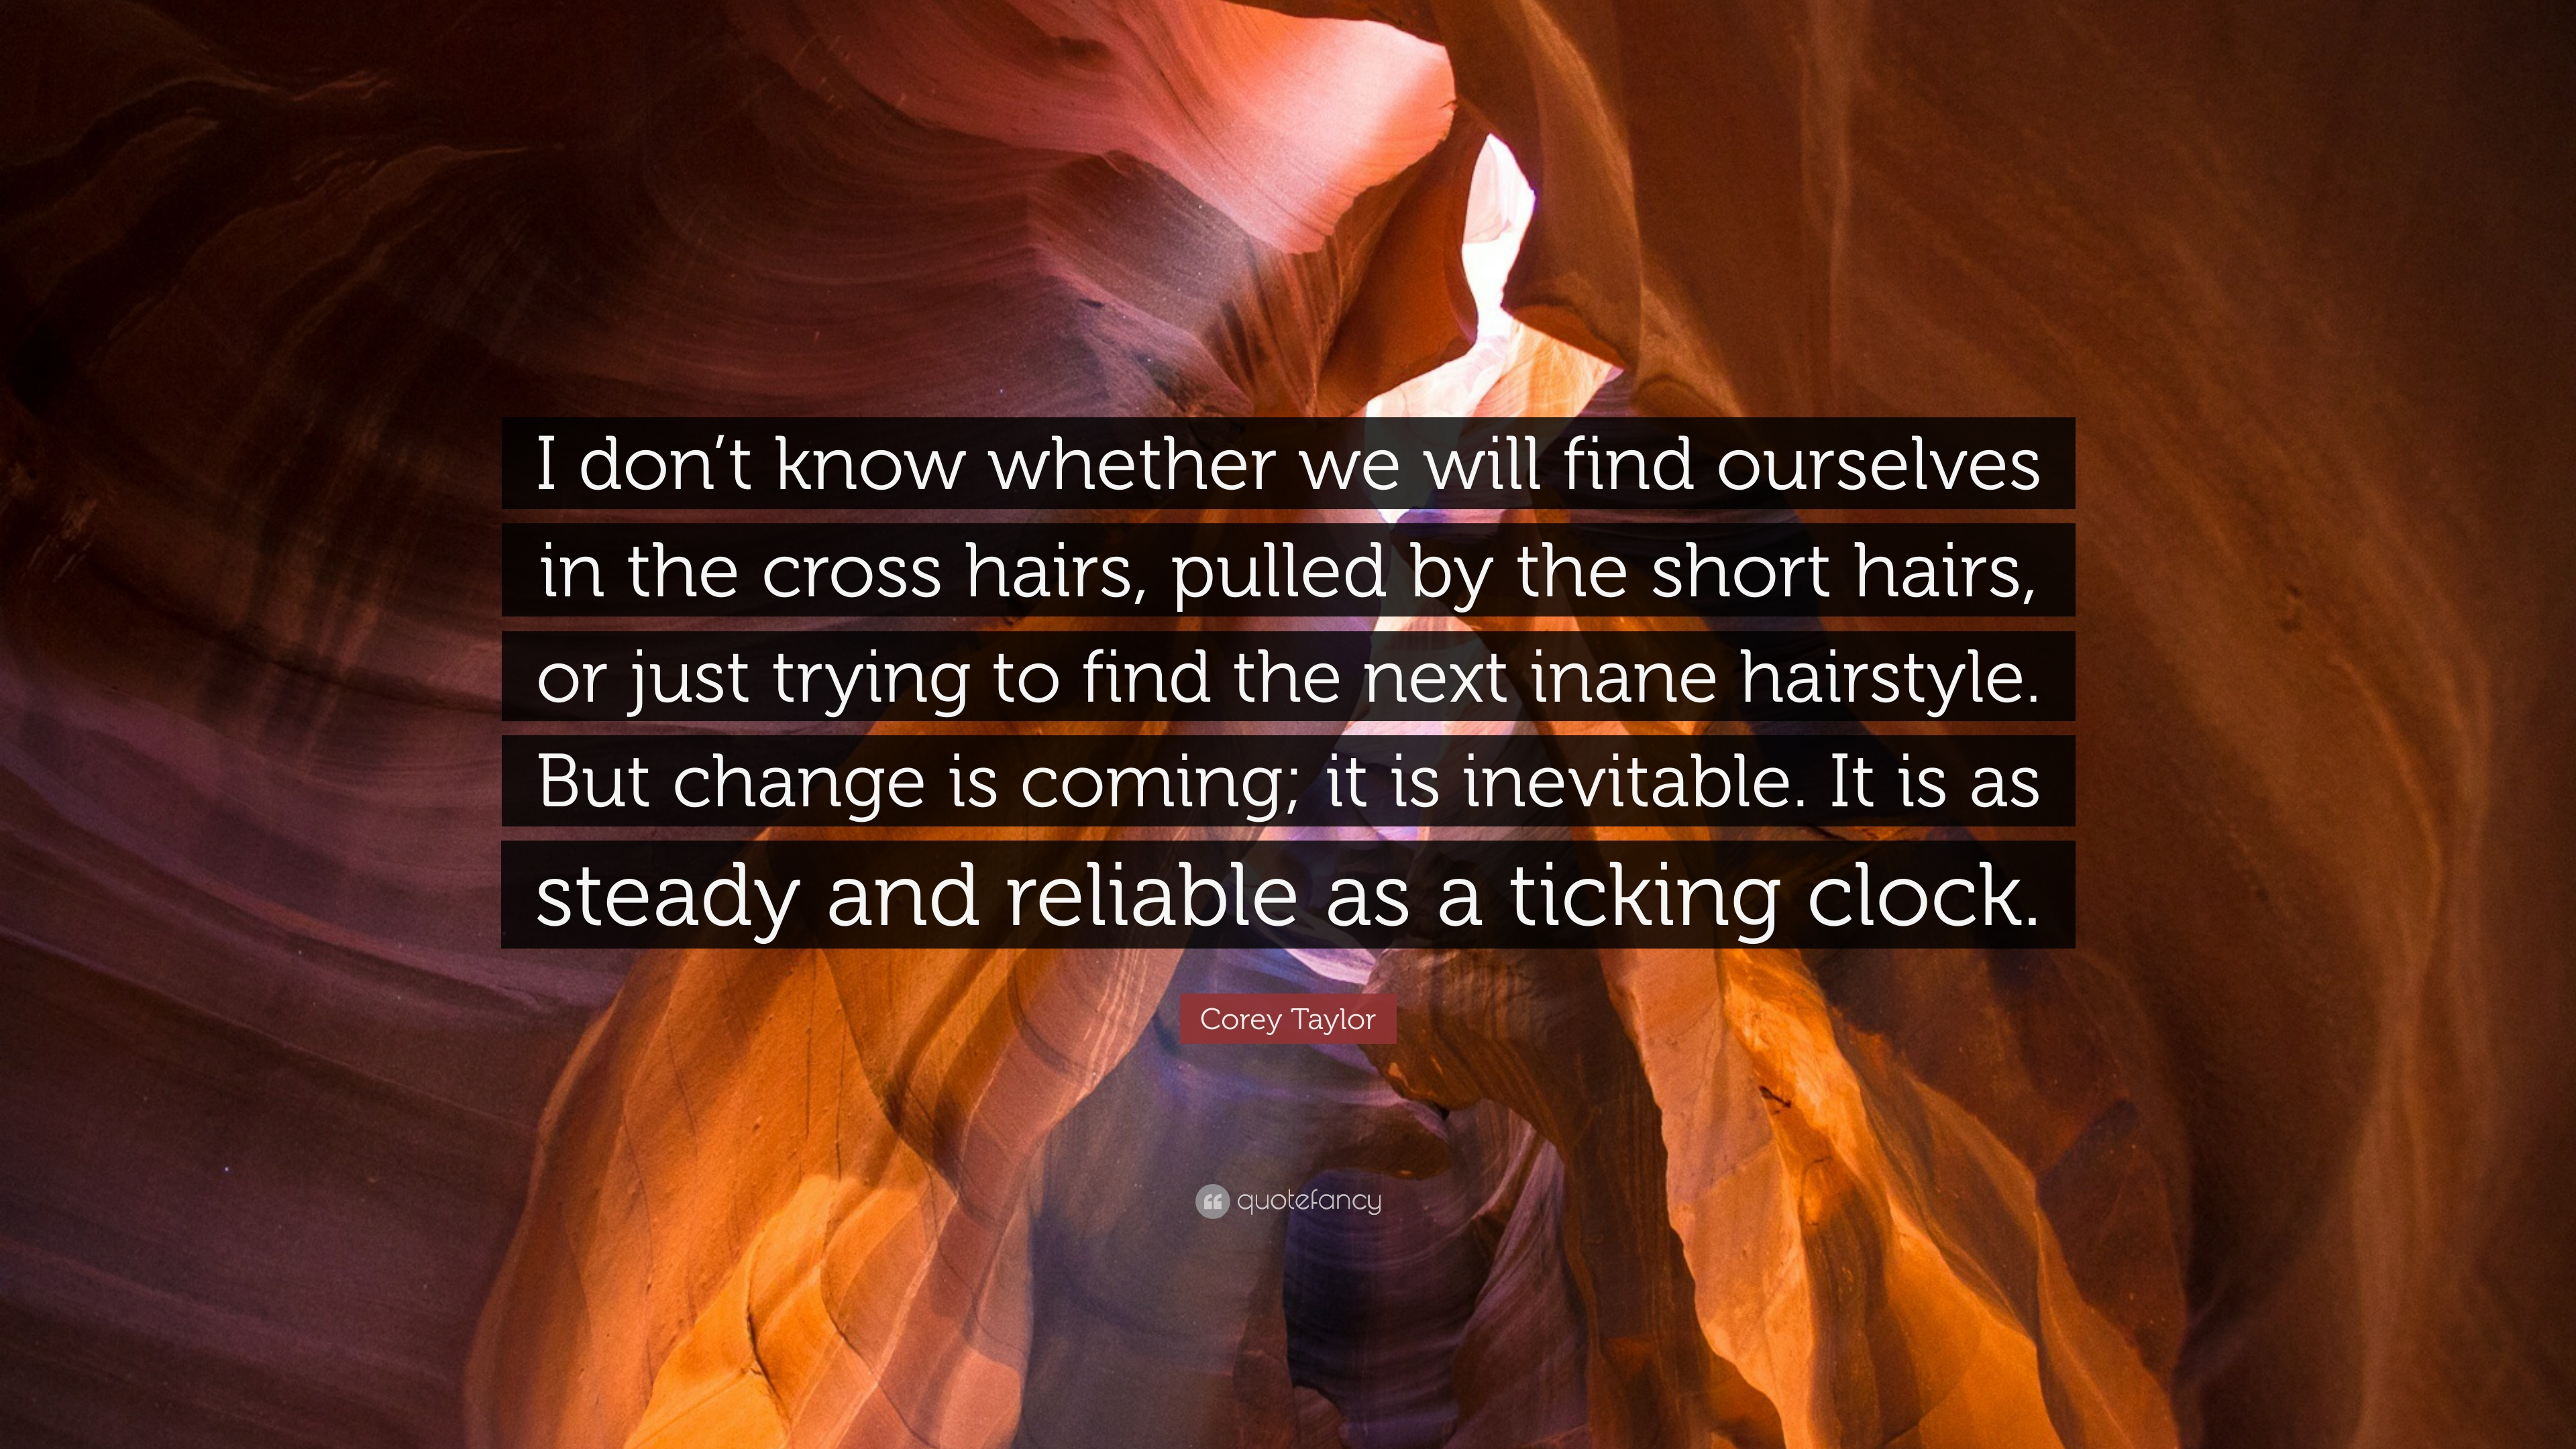 Corey Taylor Quote I Don T Know Whether We Will Find Ourselves In The Cross Hairs Pulled By The Short Hairs Or Just Trying To Find The Ne 7 Wallpapers Quotefancy